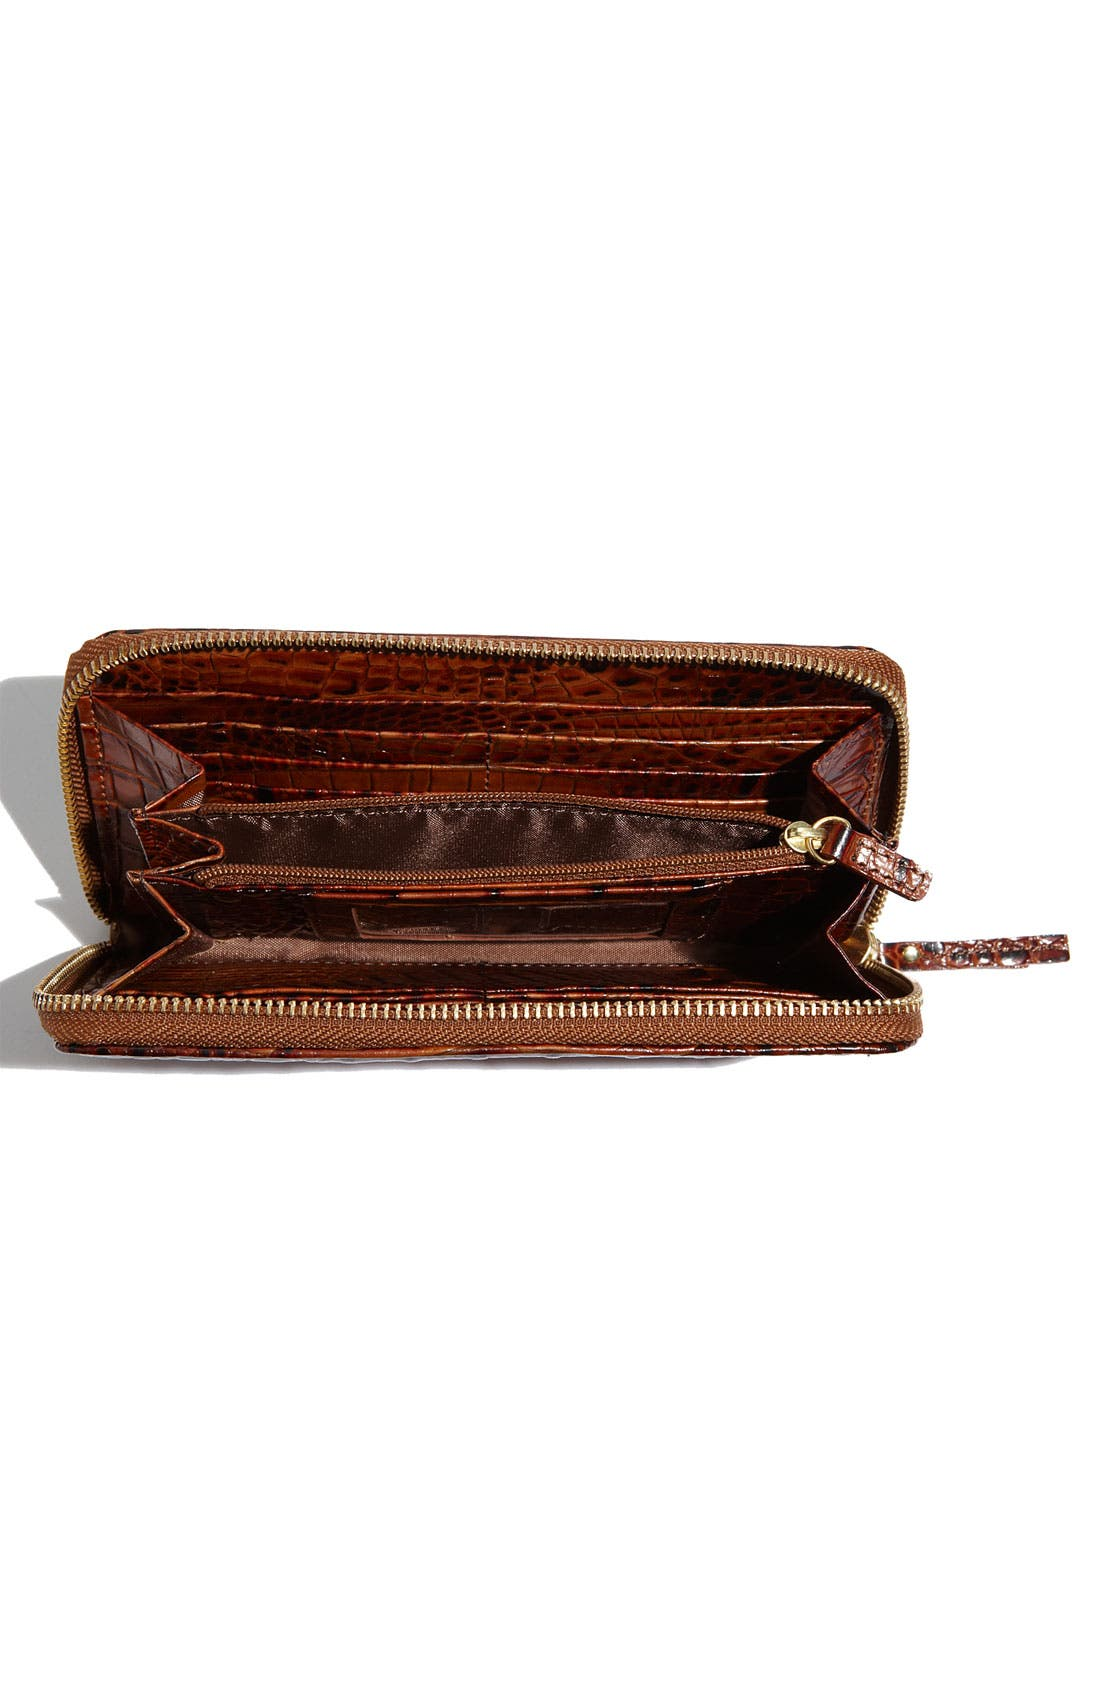 Alternate Image 3  - Brahmin 'Suri' Zip Around Wallet